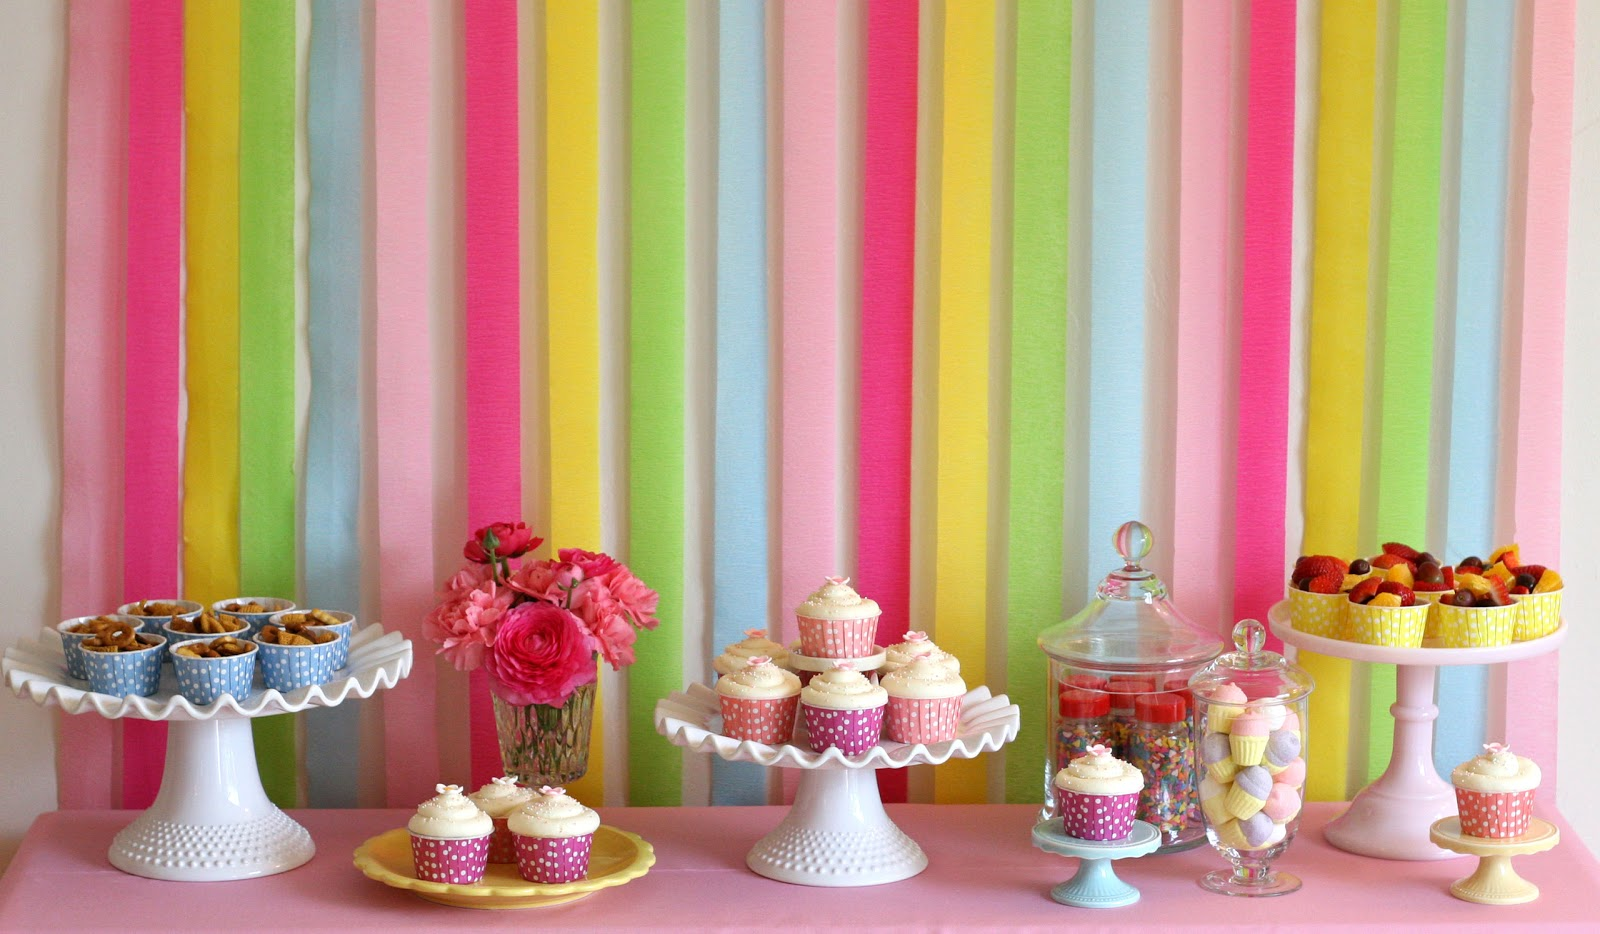 DIY Dessert Candy Buffet Ideas | HowToCookThat : Best Birthday ...